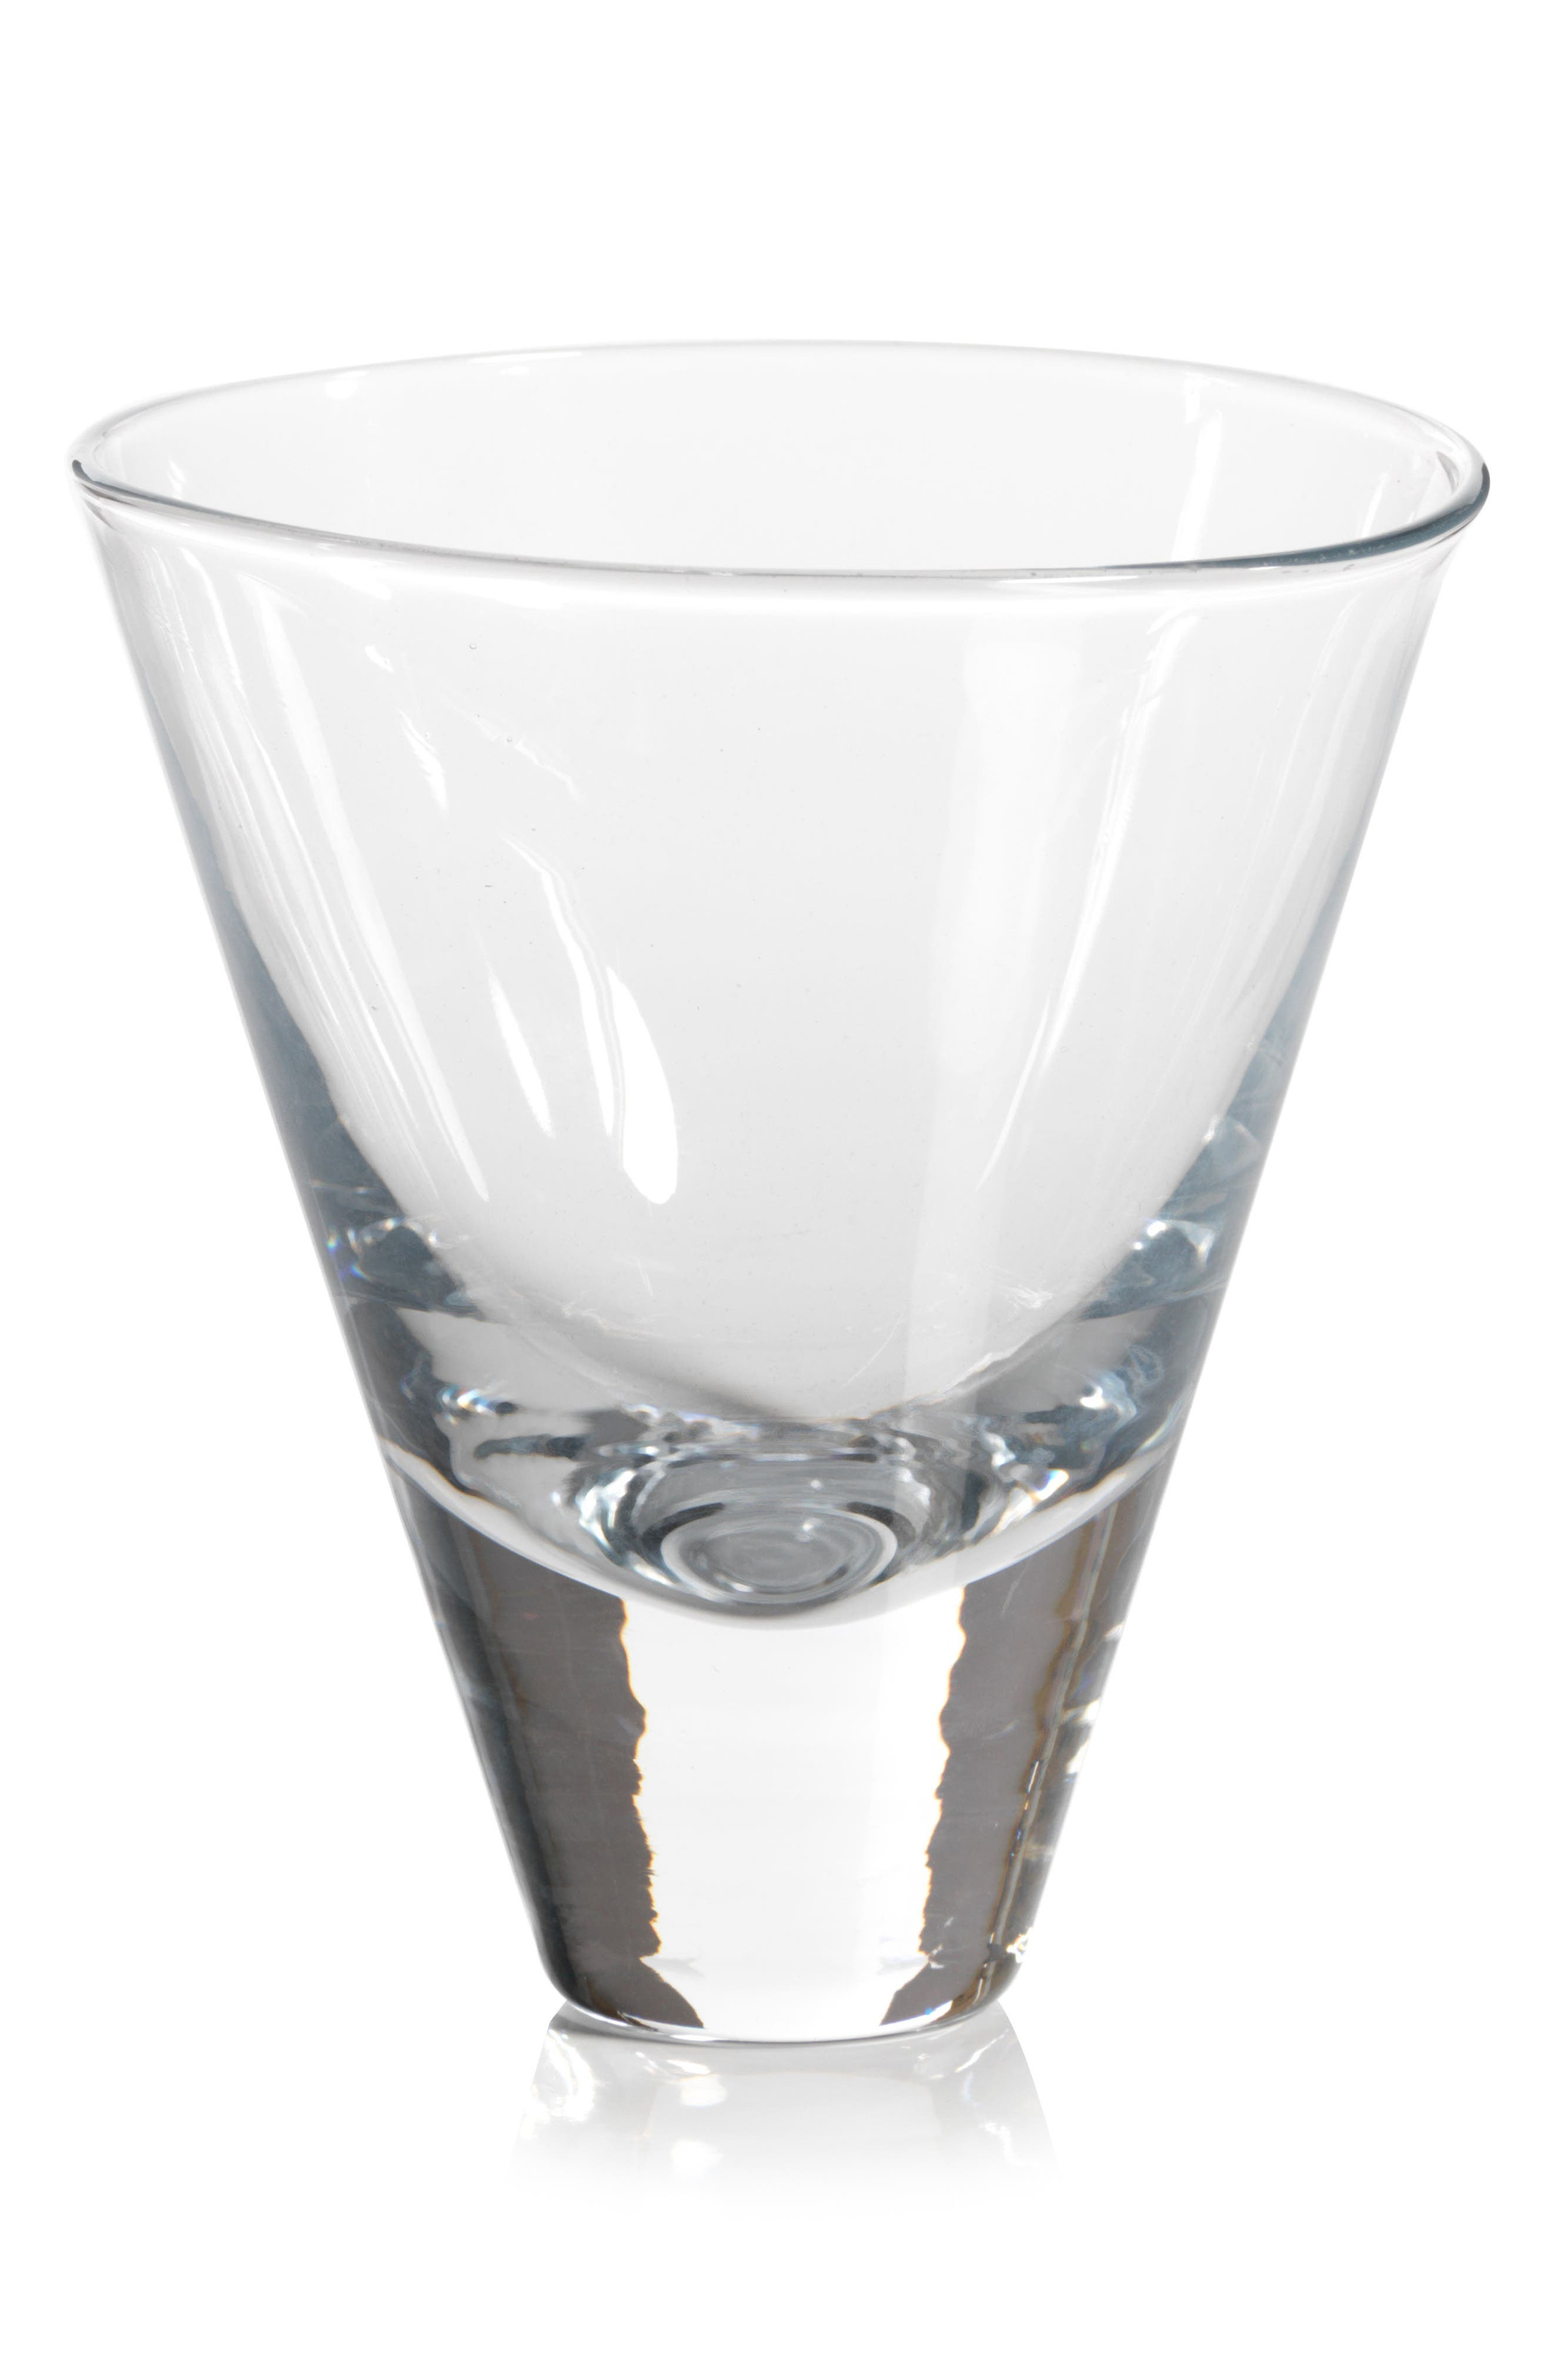 Anatole Set of 4 Cocktail Glasses,                             Main thumbnail 1, color,                             Clear